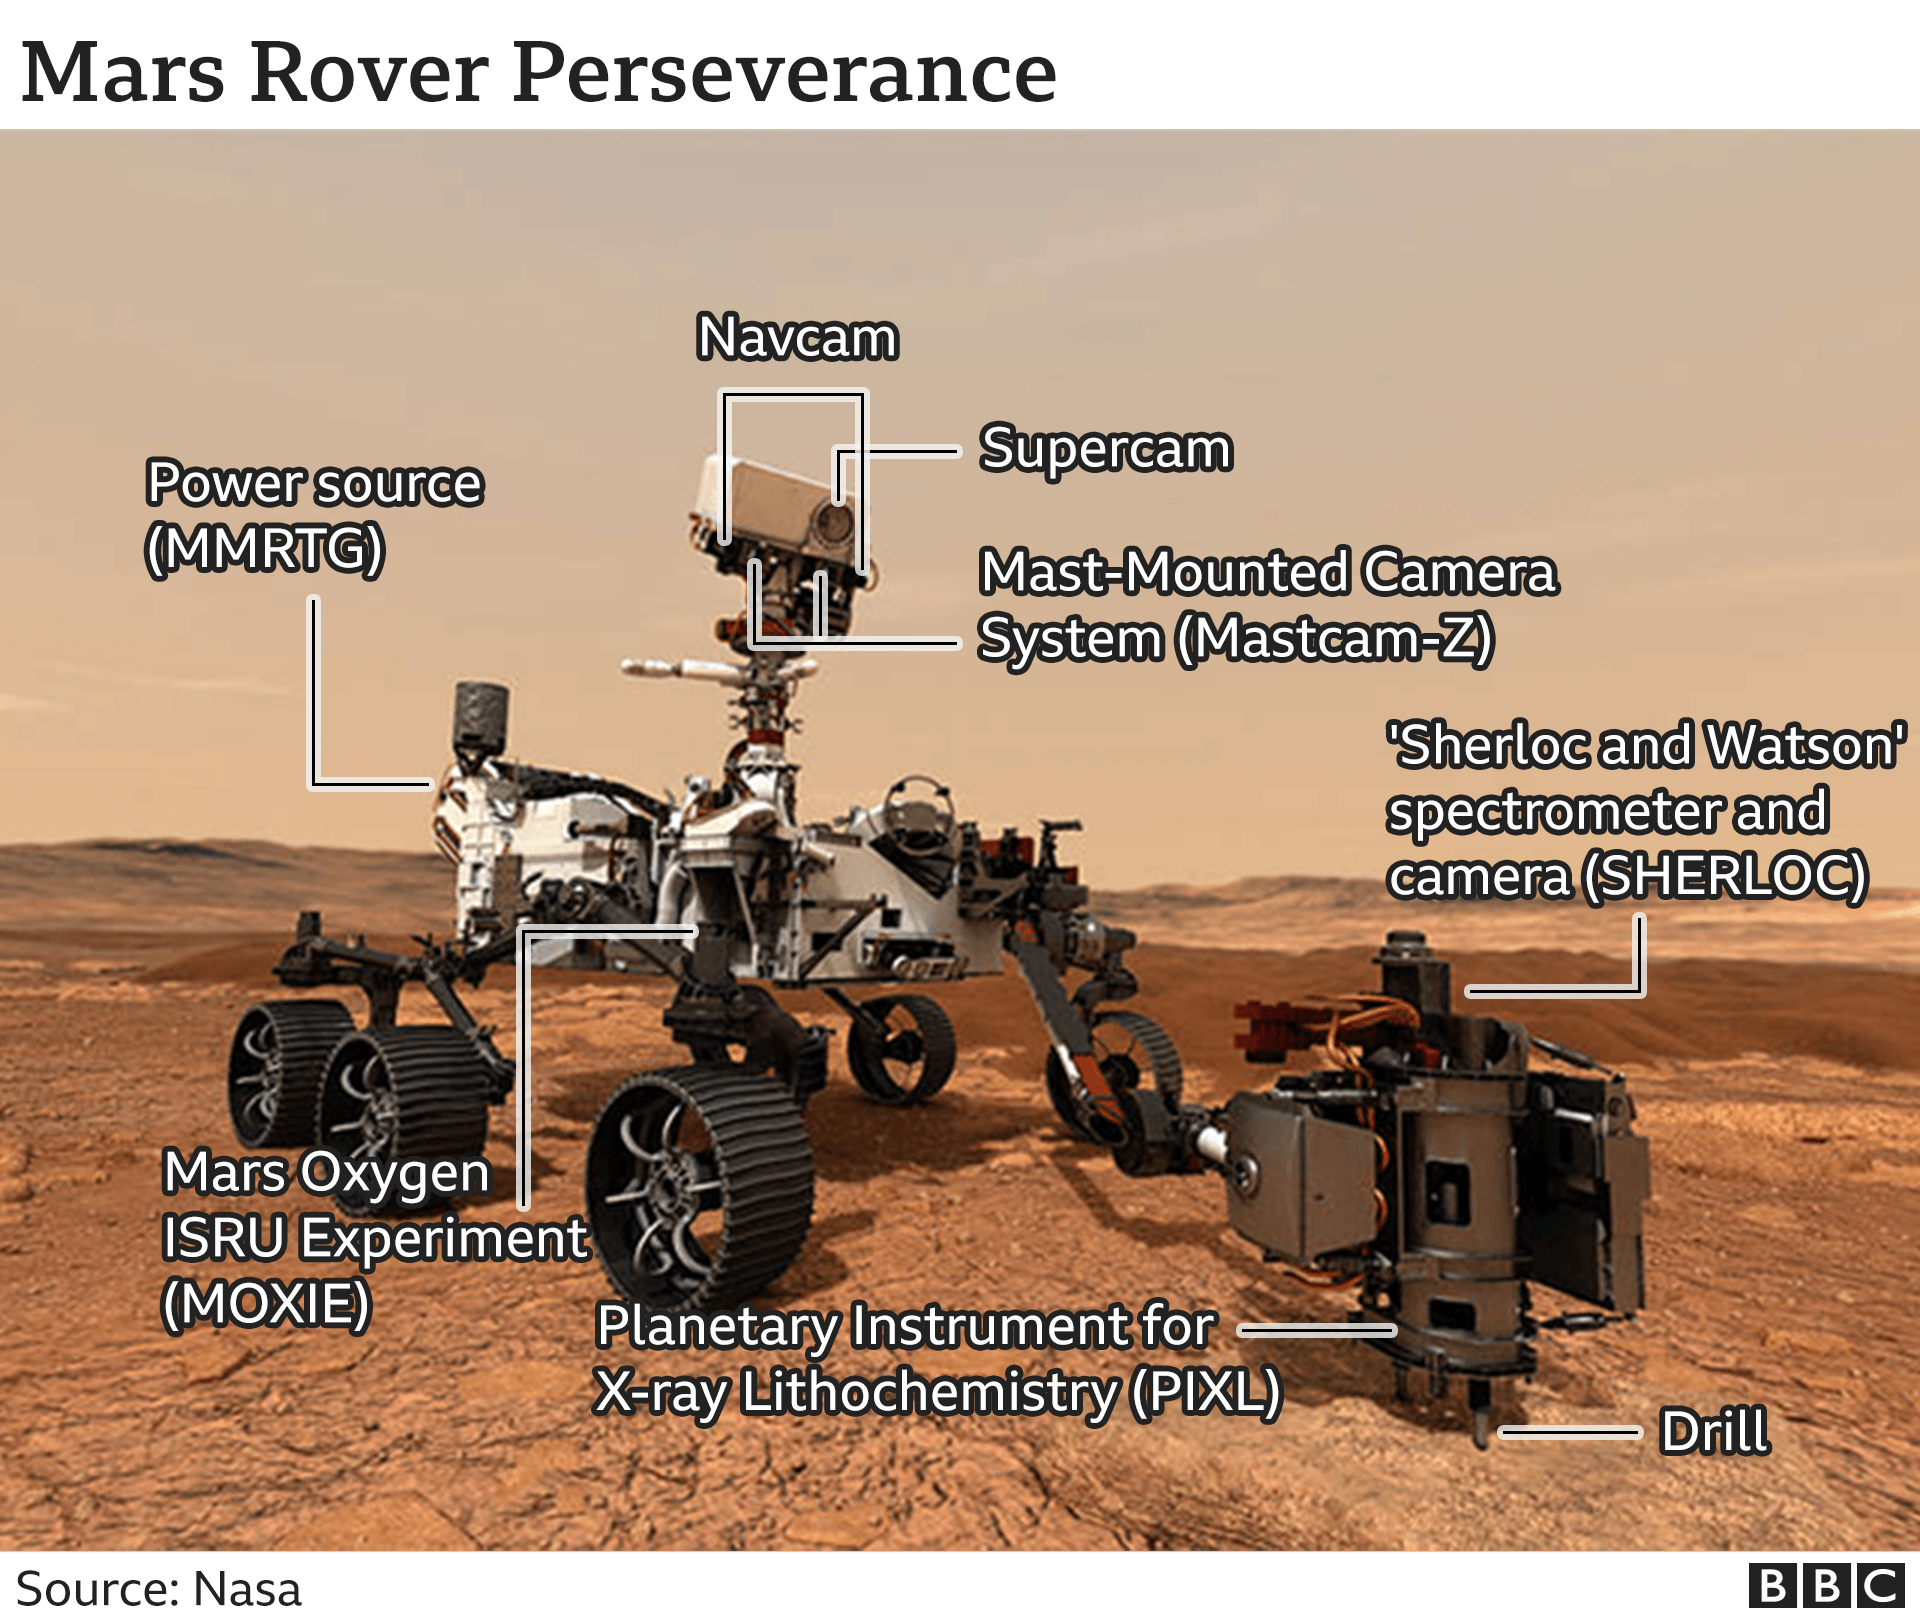 Rover diagram